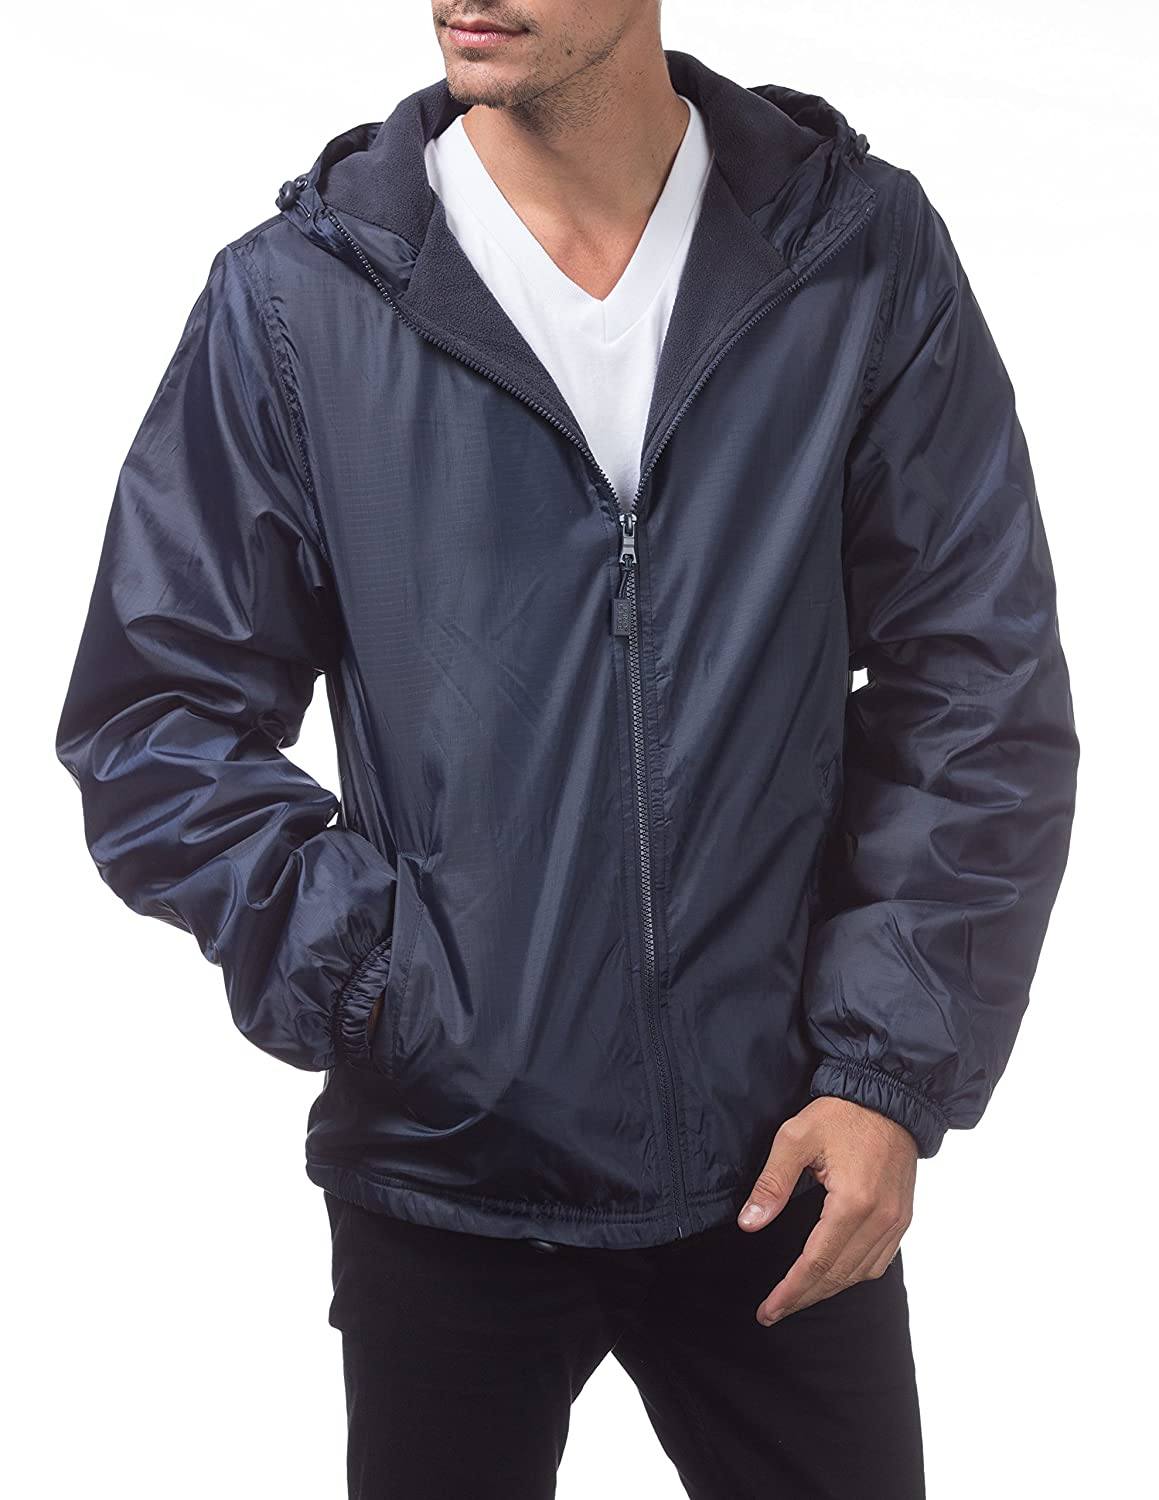 Amazon.com: Pro Club Fleece Lined Windbreaker Jacket: Clothing